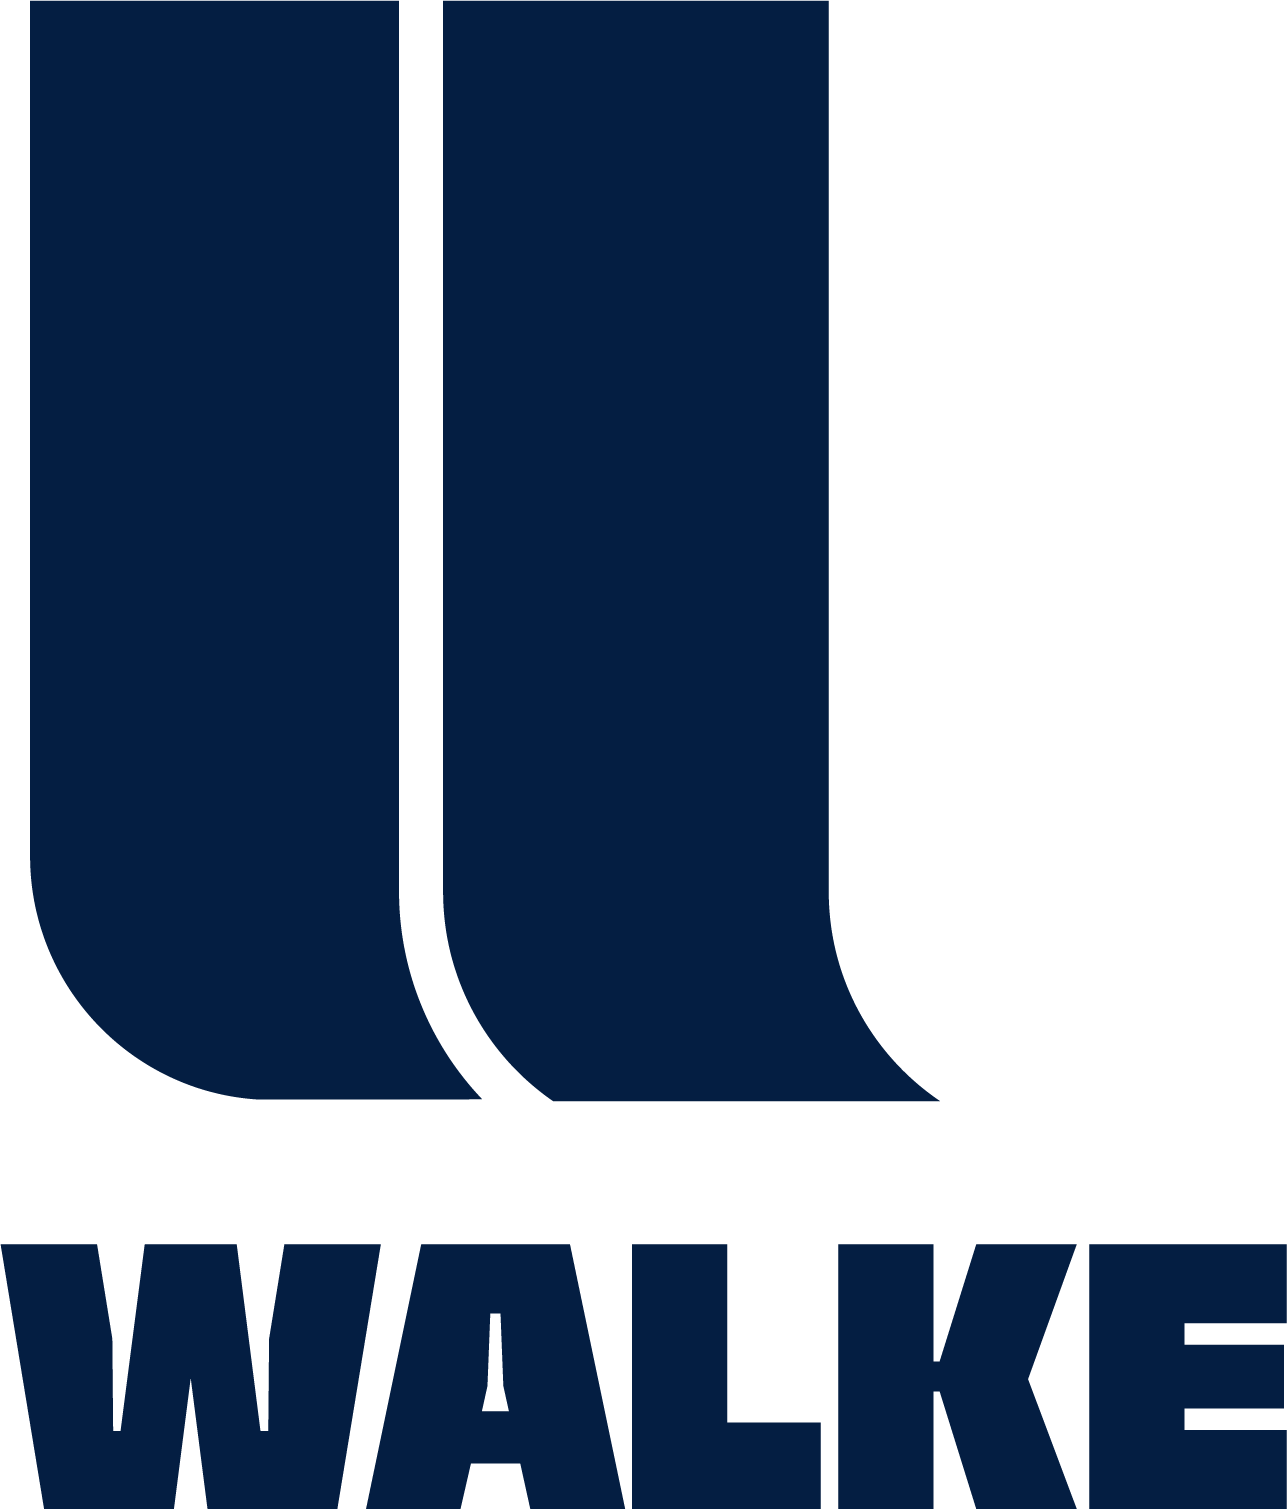 Walke - Logo footer